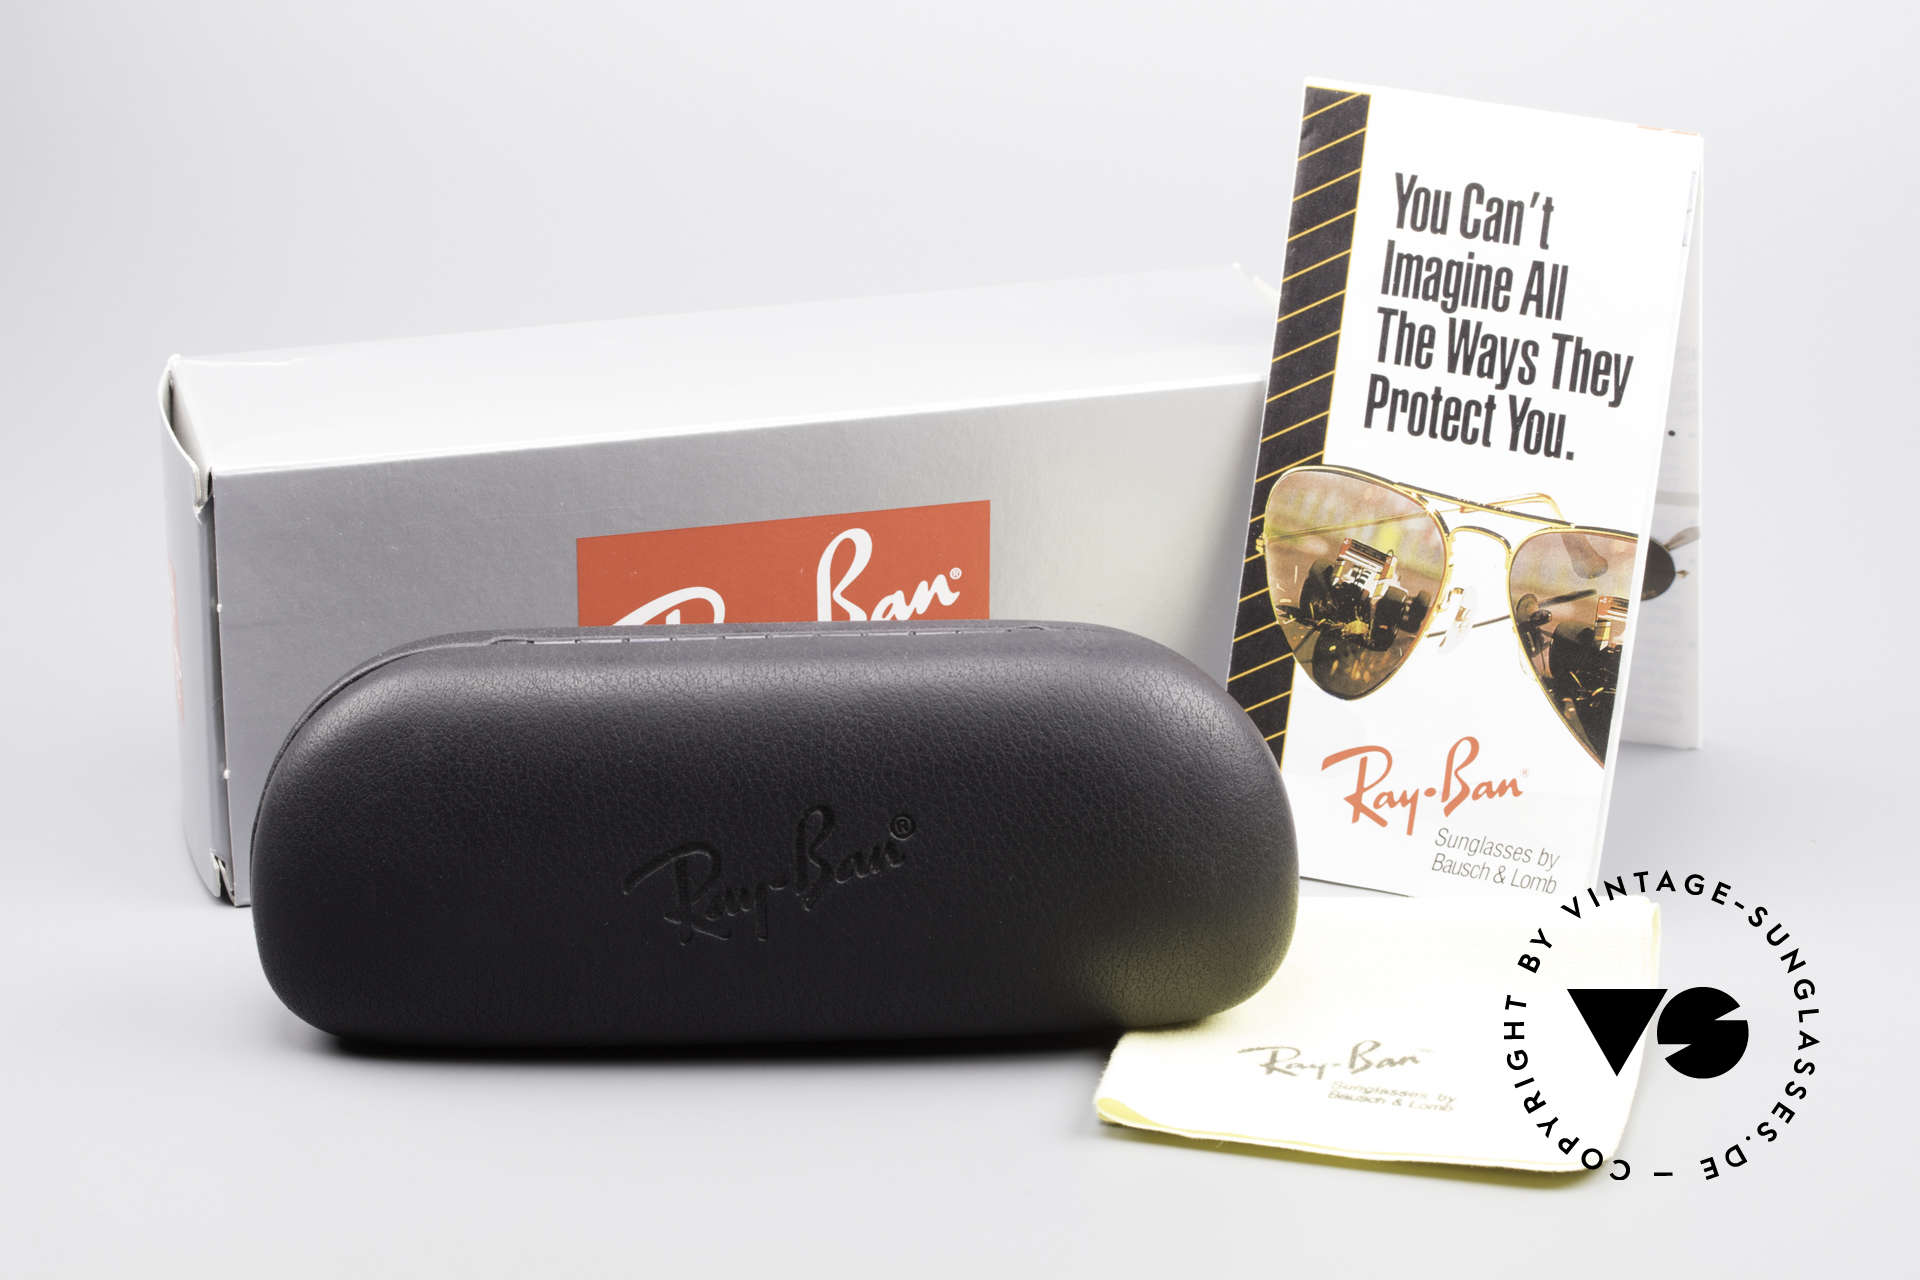 Ray Ban Gatsby Style 2 Old Ray Ban USA Sunglasses, orig. name: B&L Gatsby Style 2, W0934, G-15, Made for Men and Women